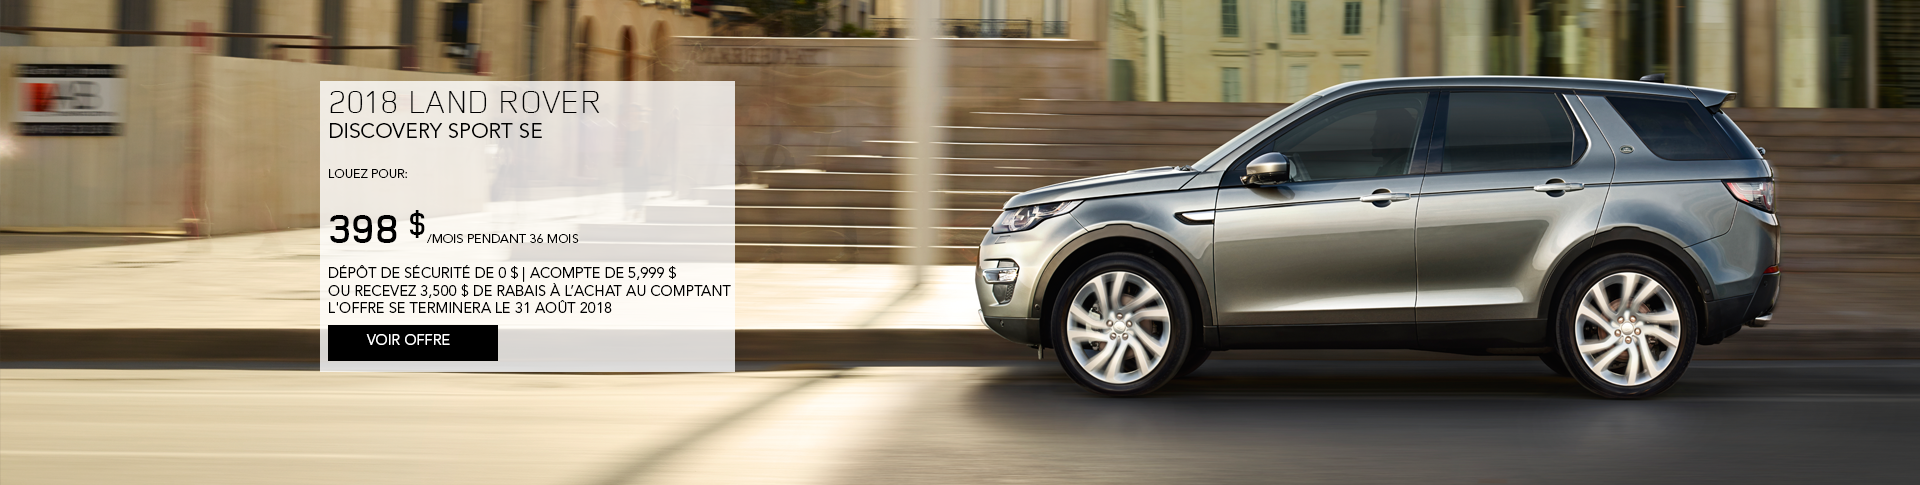 August 2018 Discovery Sport Offer